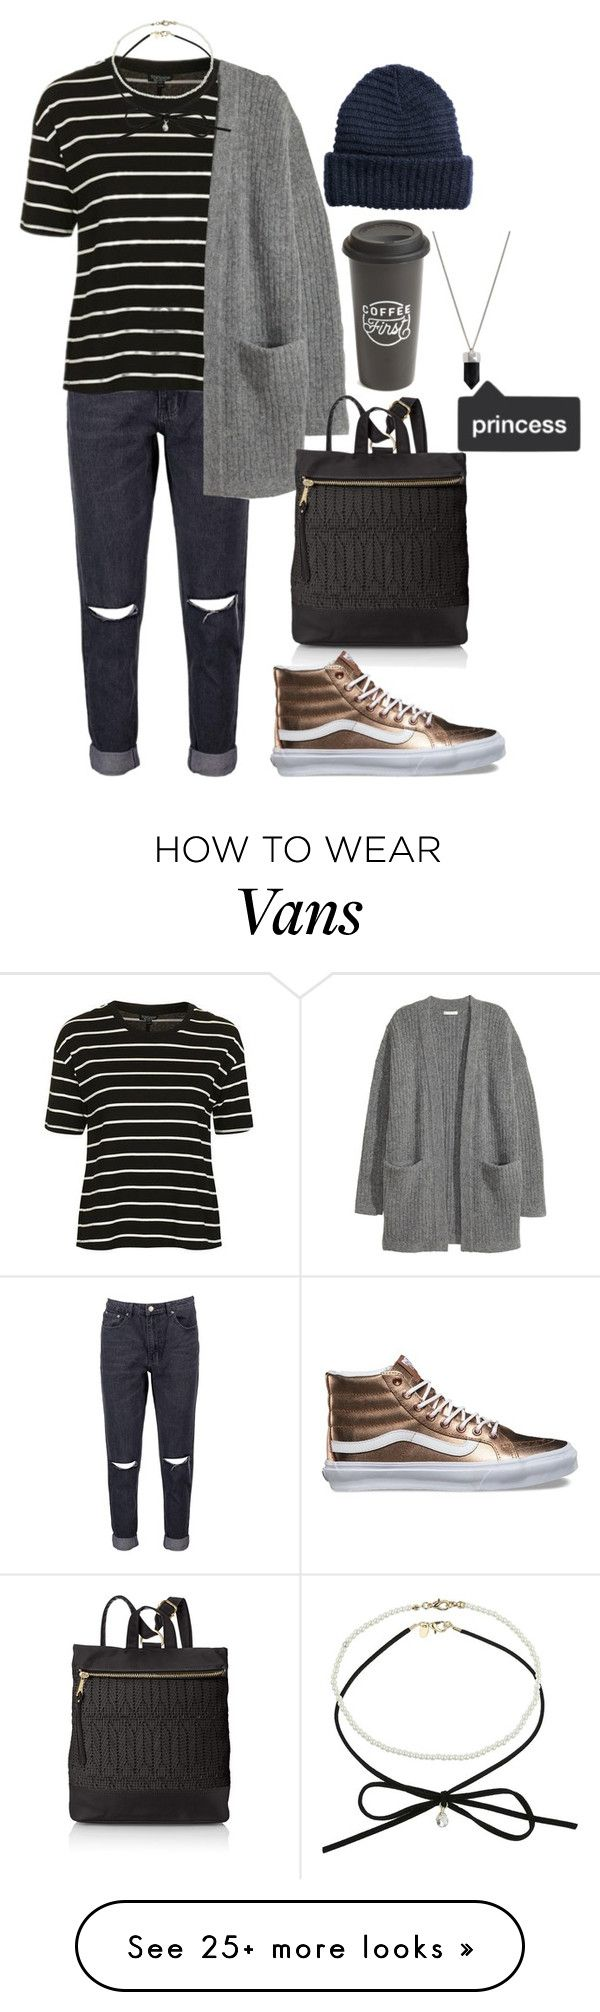 """""""all we know"""" by darling-ange1 on Polyvore featuring Boohoo, Topshop, Miss Selfridge, Poverty Flats, The Created Co., Vans, H&M and MTWTFSS Weekday"""